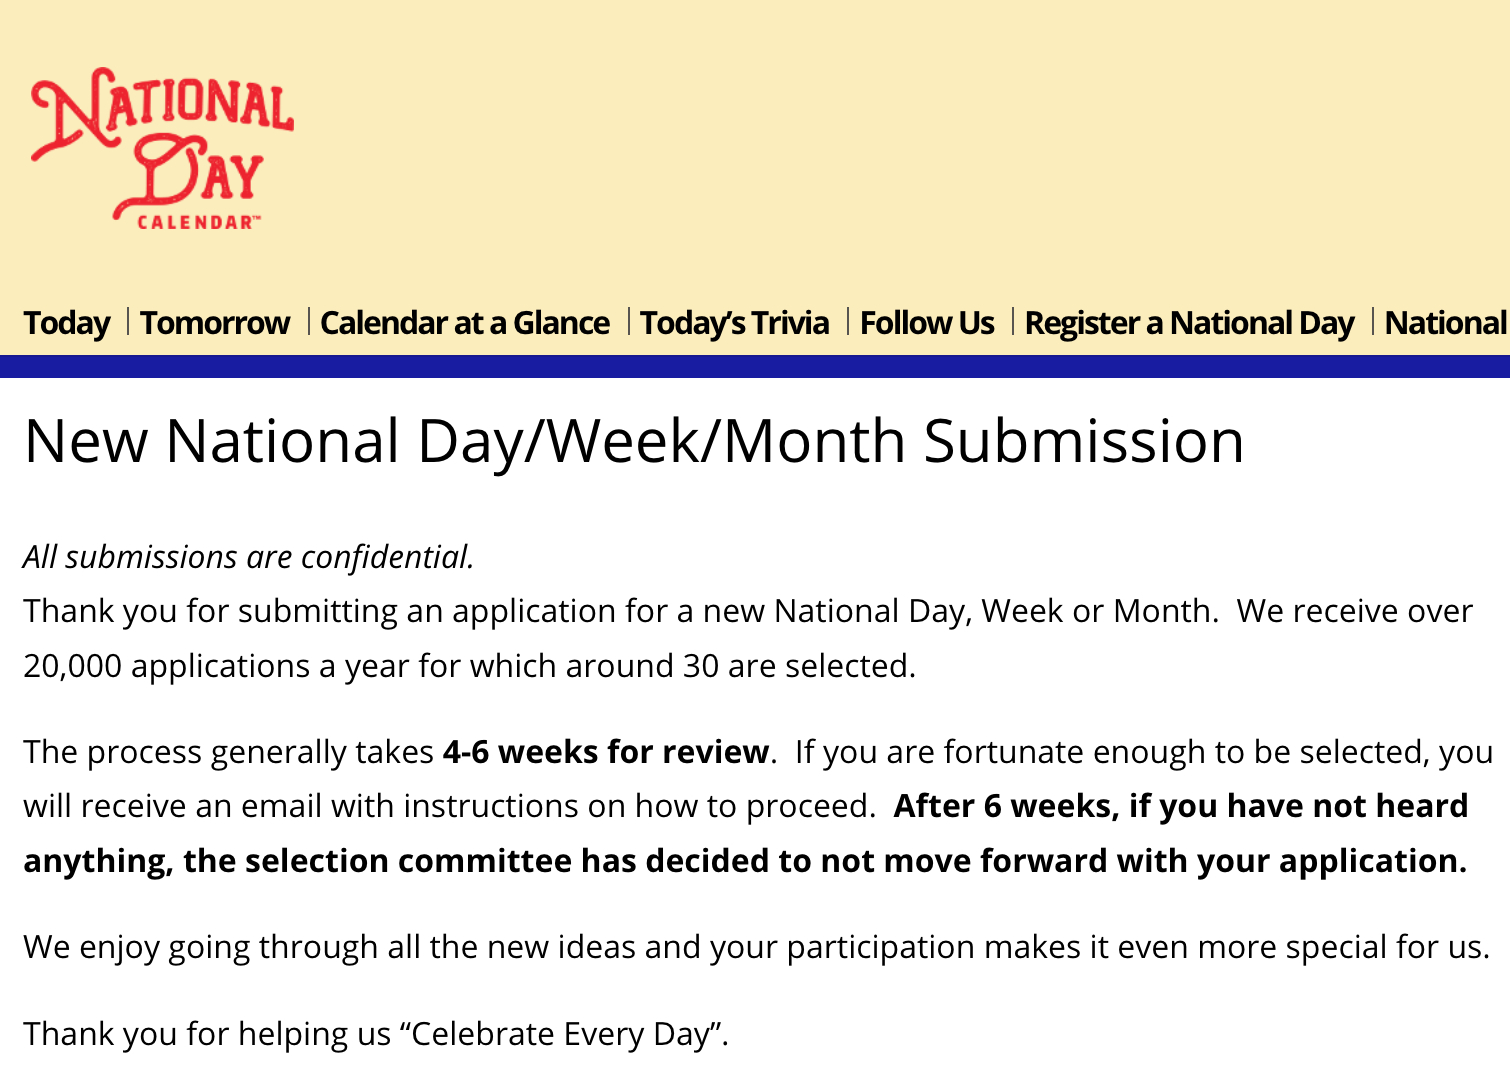 Mixtape Marketing: Blog | National Mixtape Day On October 14Th? with regard to National Day Calendar At A Glance